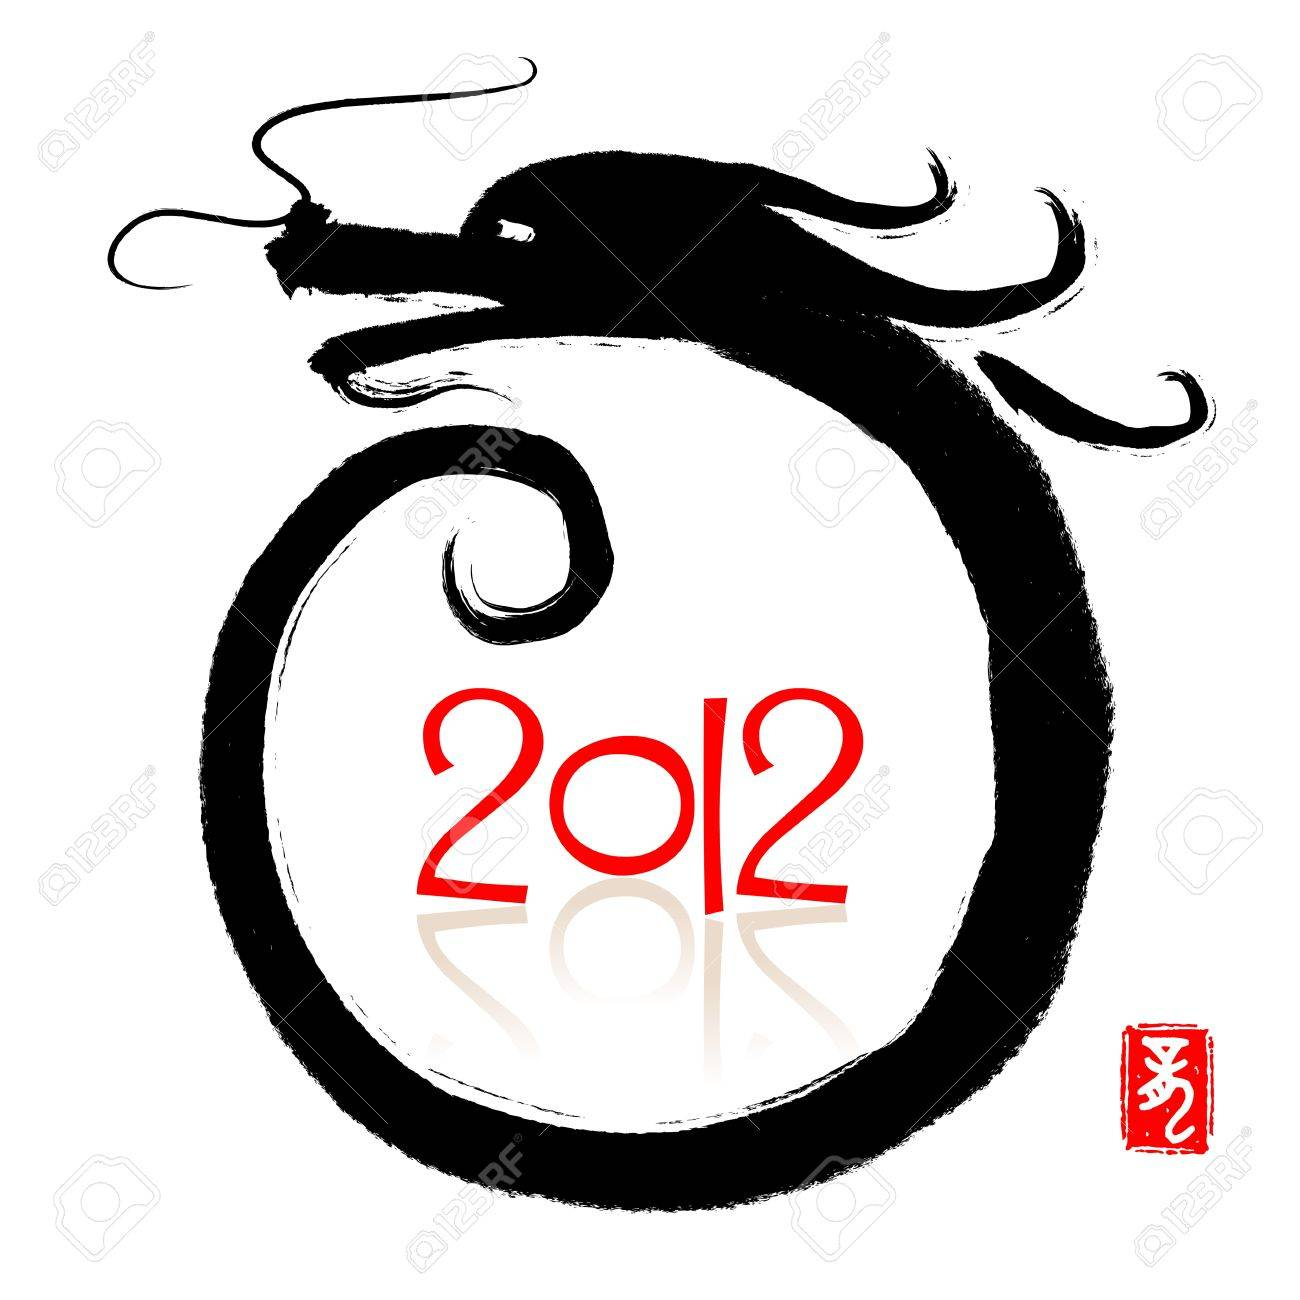 2012: Happy new Year of Dragon Stock Vector - 10995733